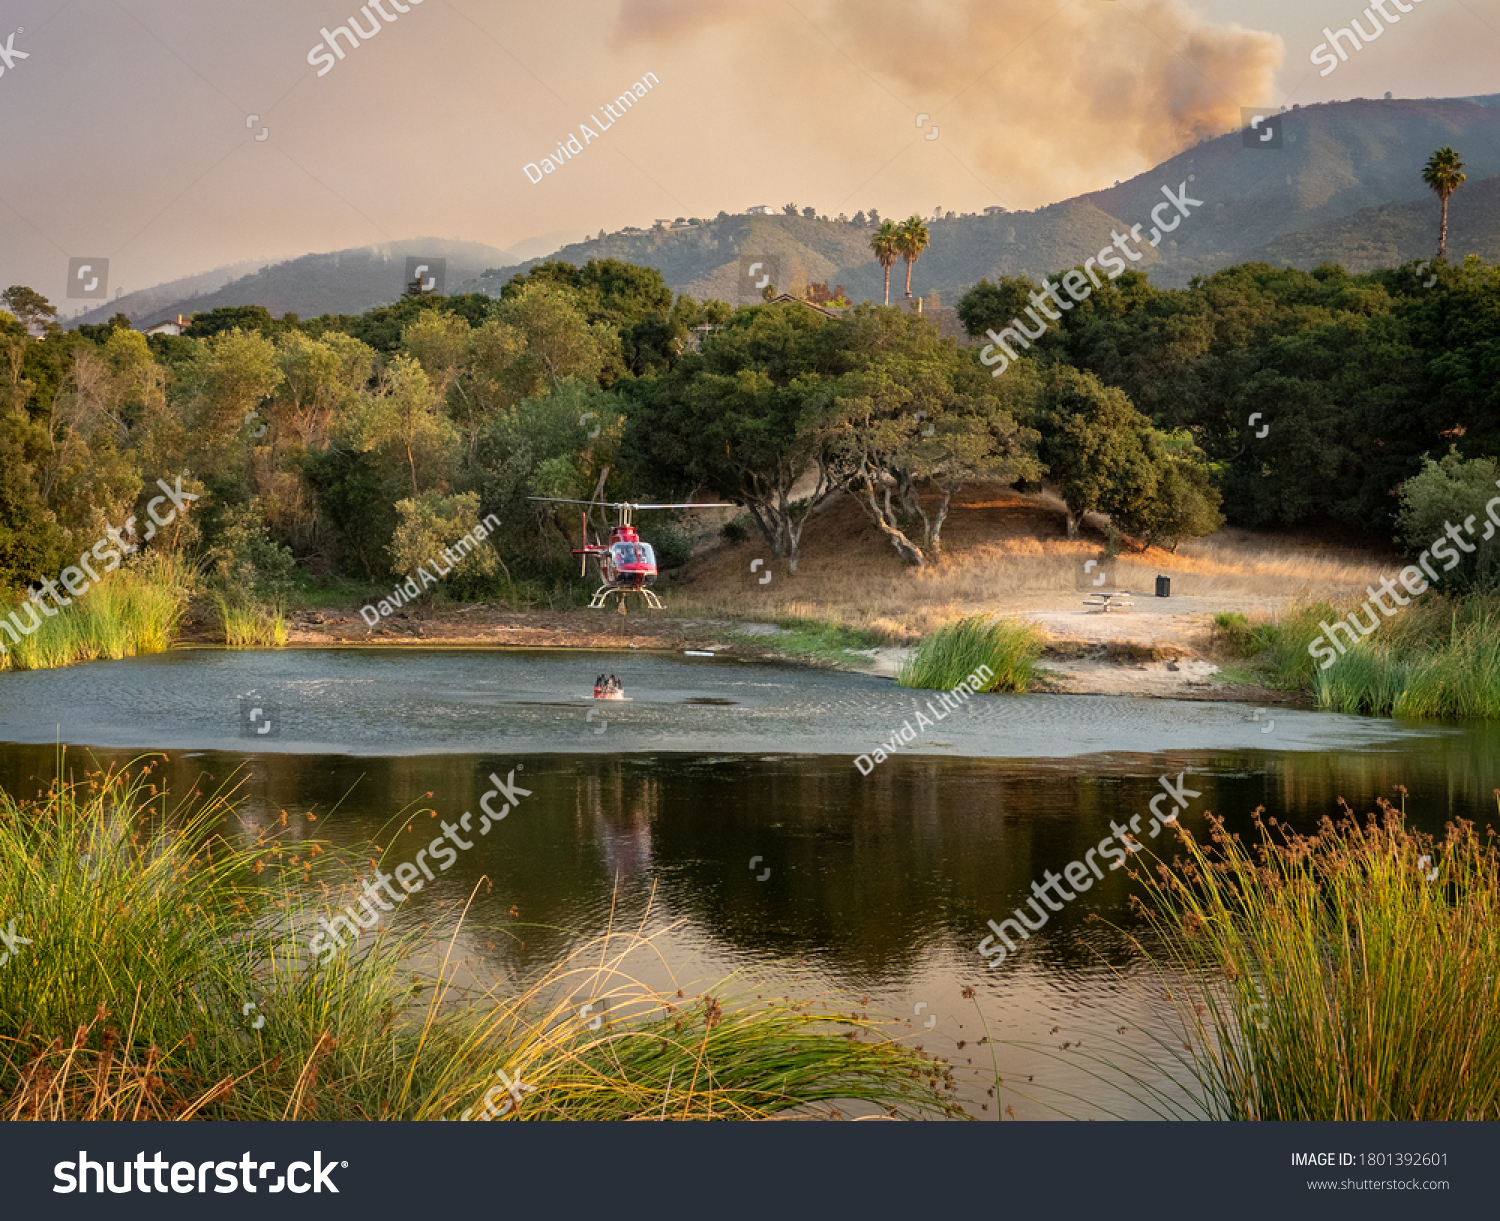 """A helicopter pilot collects a bucket of water from a pond to douse the """"River Fire"""" in the hills Monterey County of the central coast of California as plumes of smoke drift upward."""